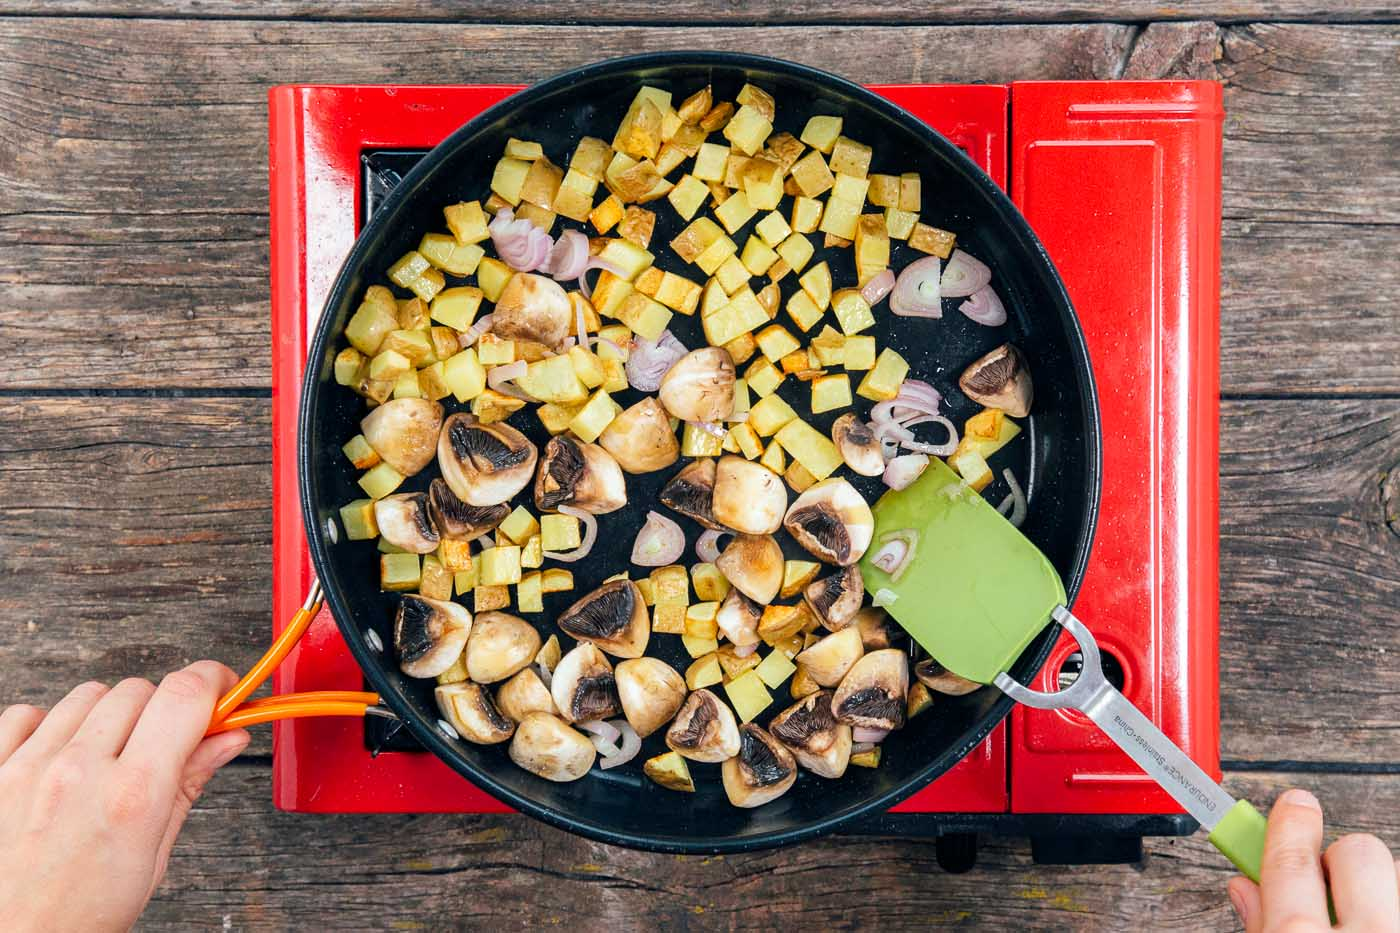 Sauteing cubed potatoes, quartered mushrooms, and shallots in a large skillet for a tofu scramble